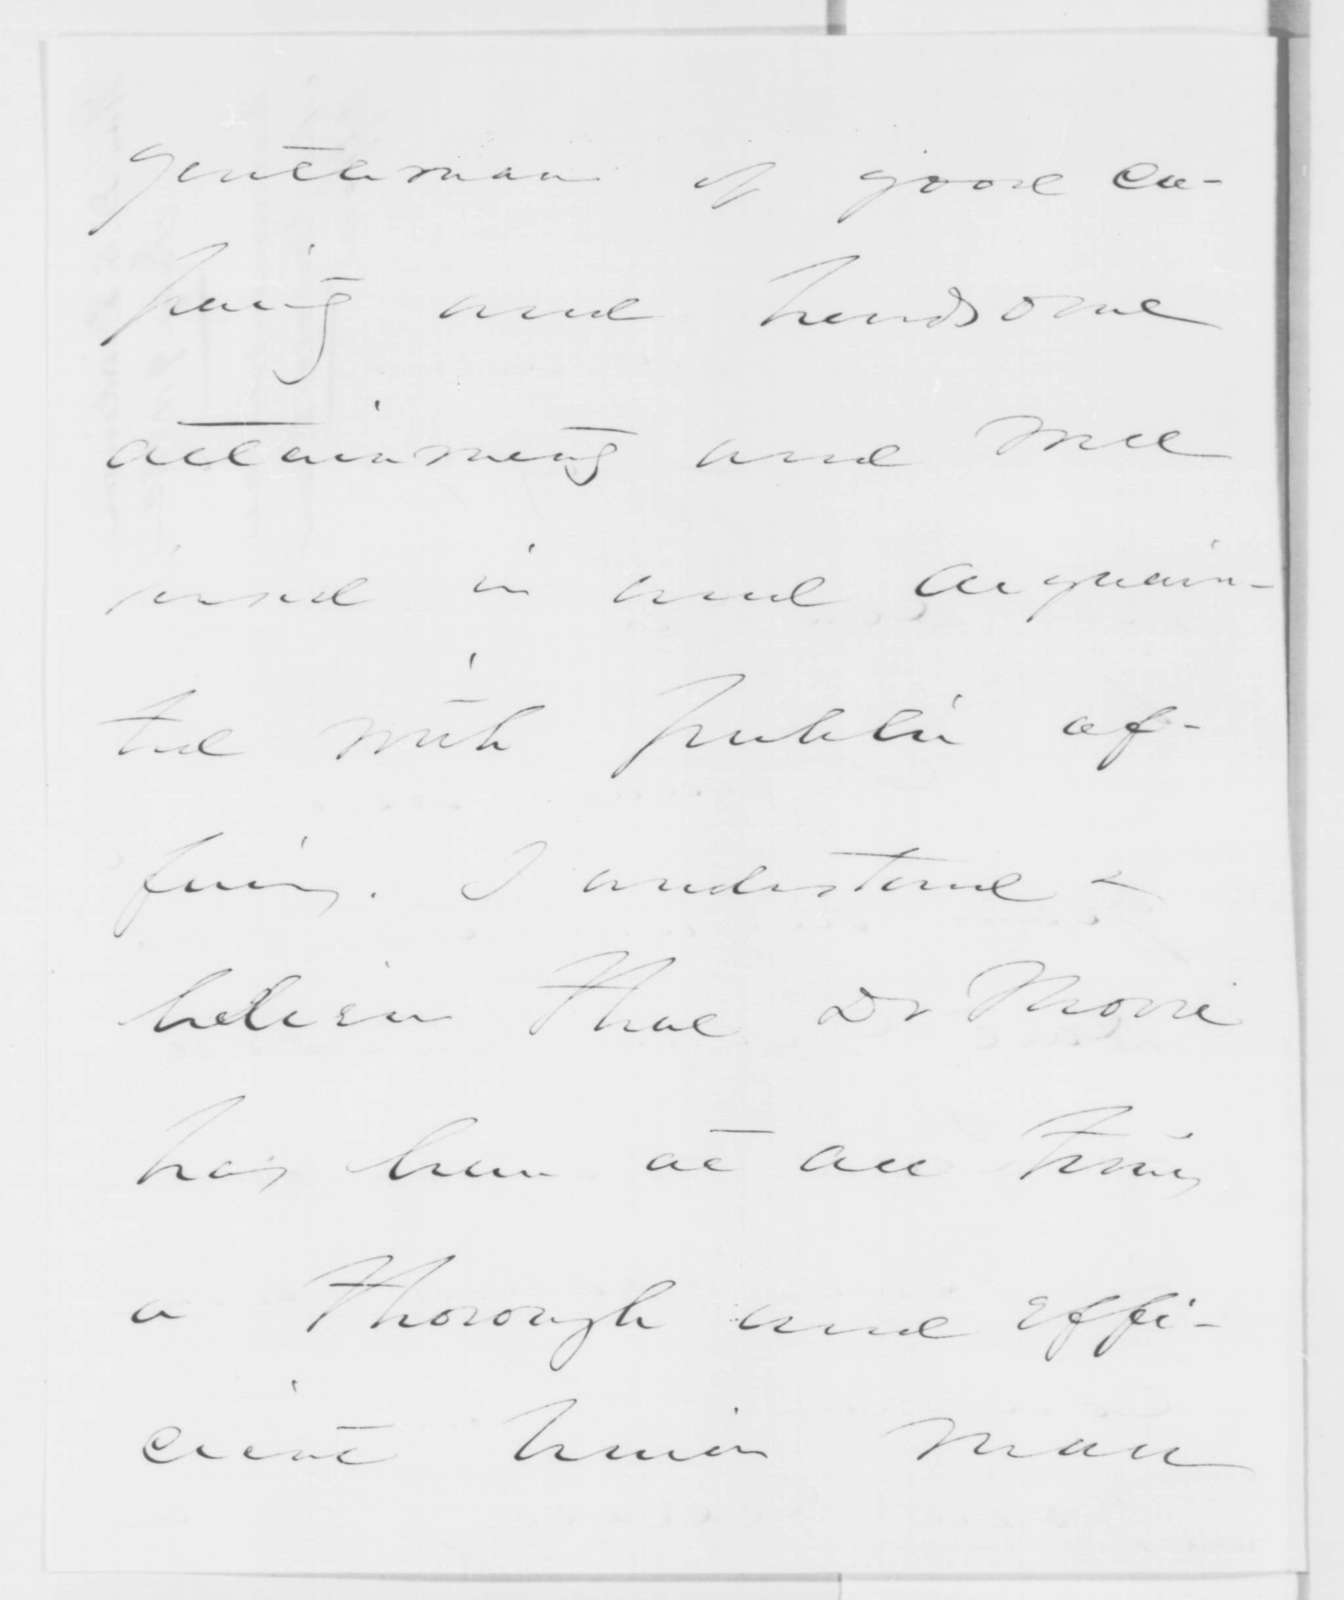 Daniel S. Dickinson to Abraham Lincoln, Wednesday, July 09, 1862  (Recommendation)